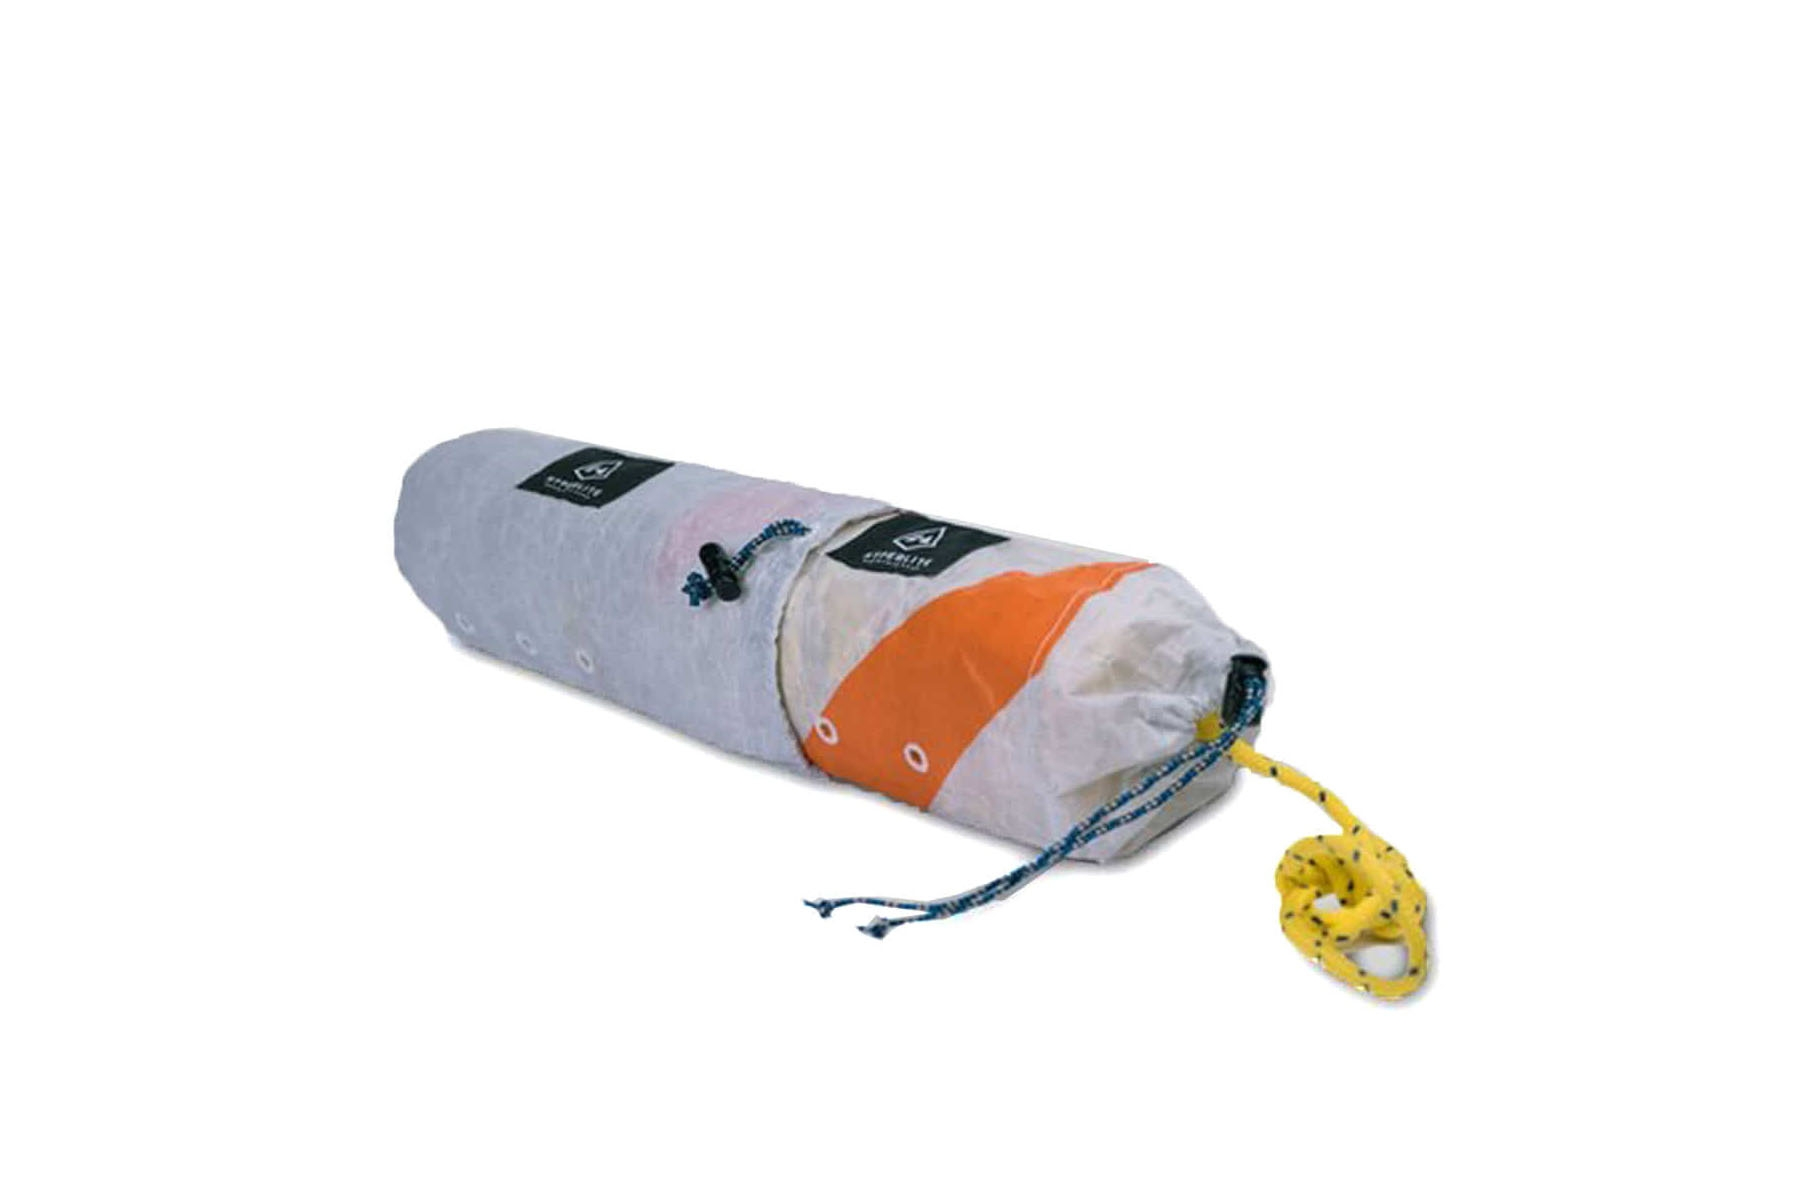 Hyperlite Mountain Gear River Rescue Throw Bag